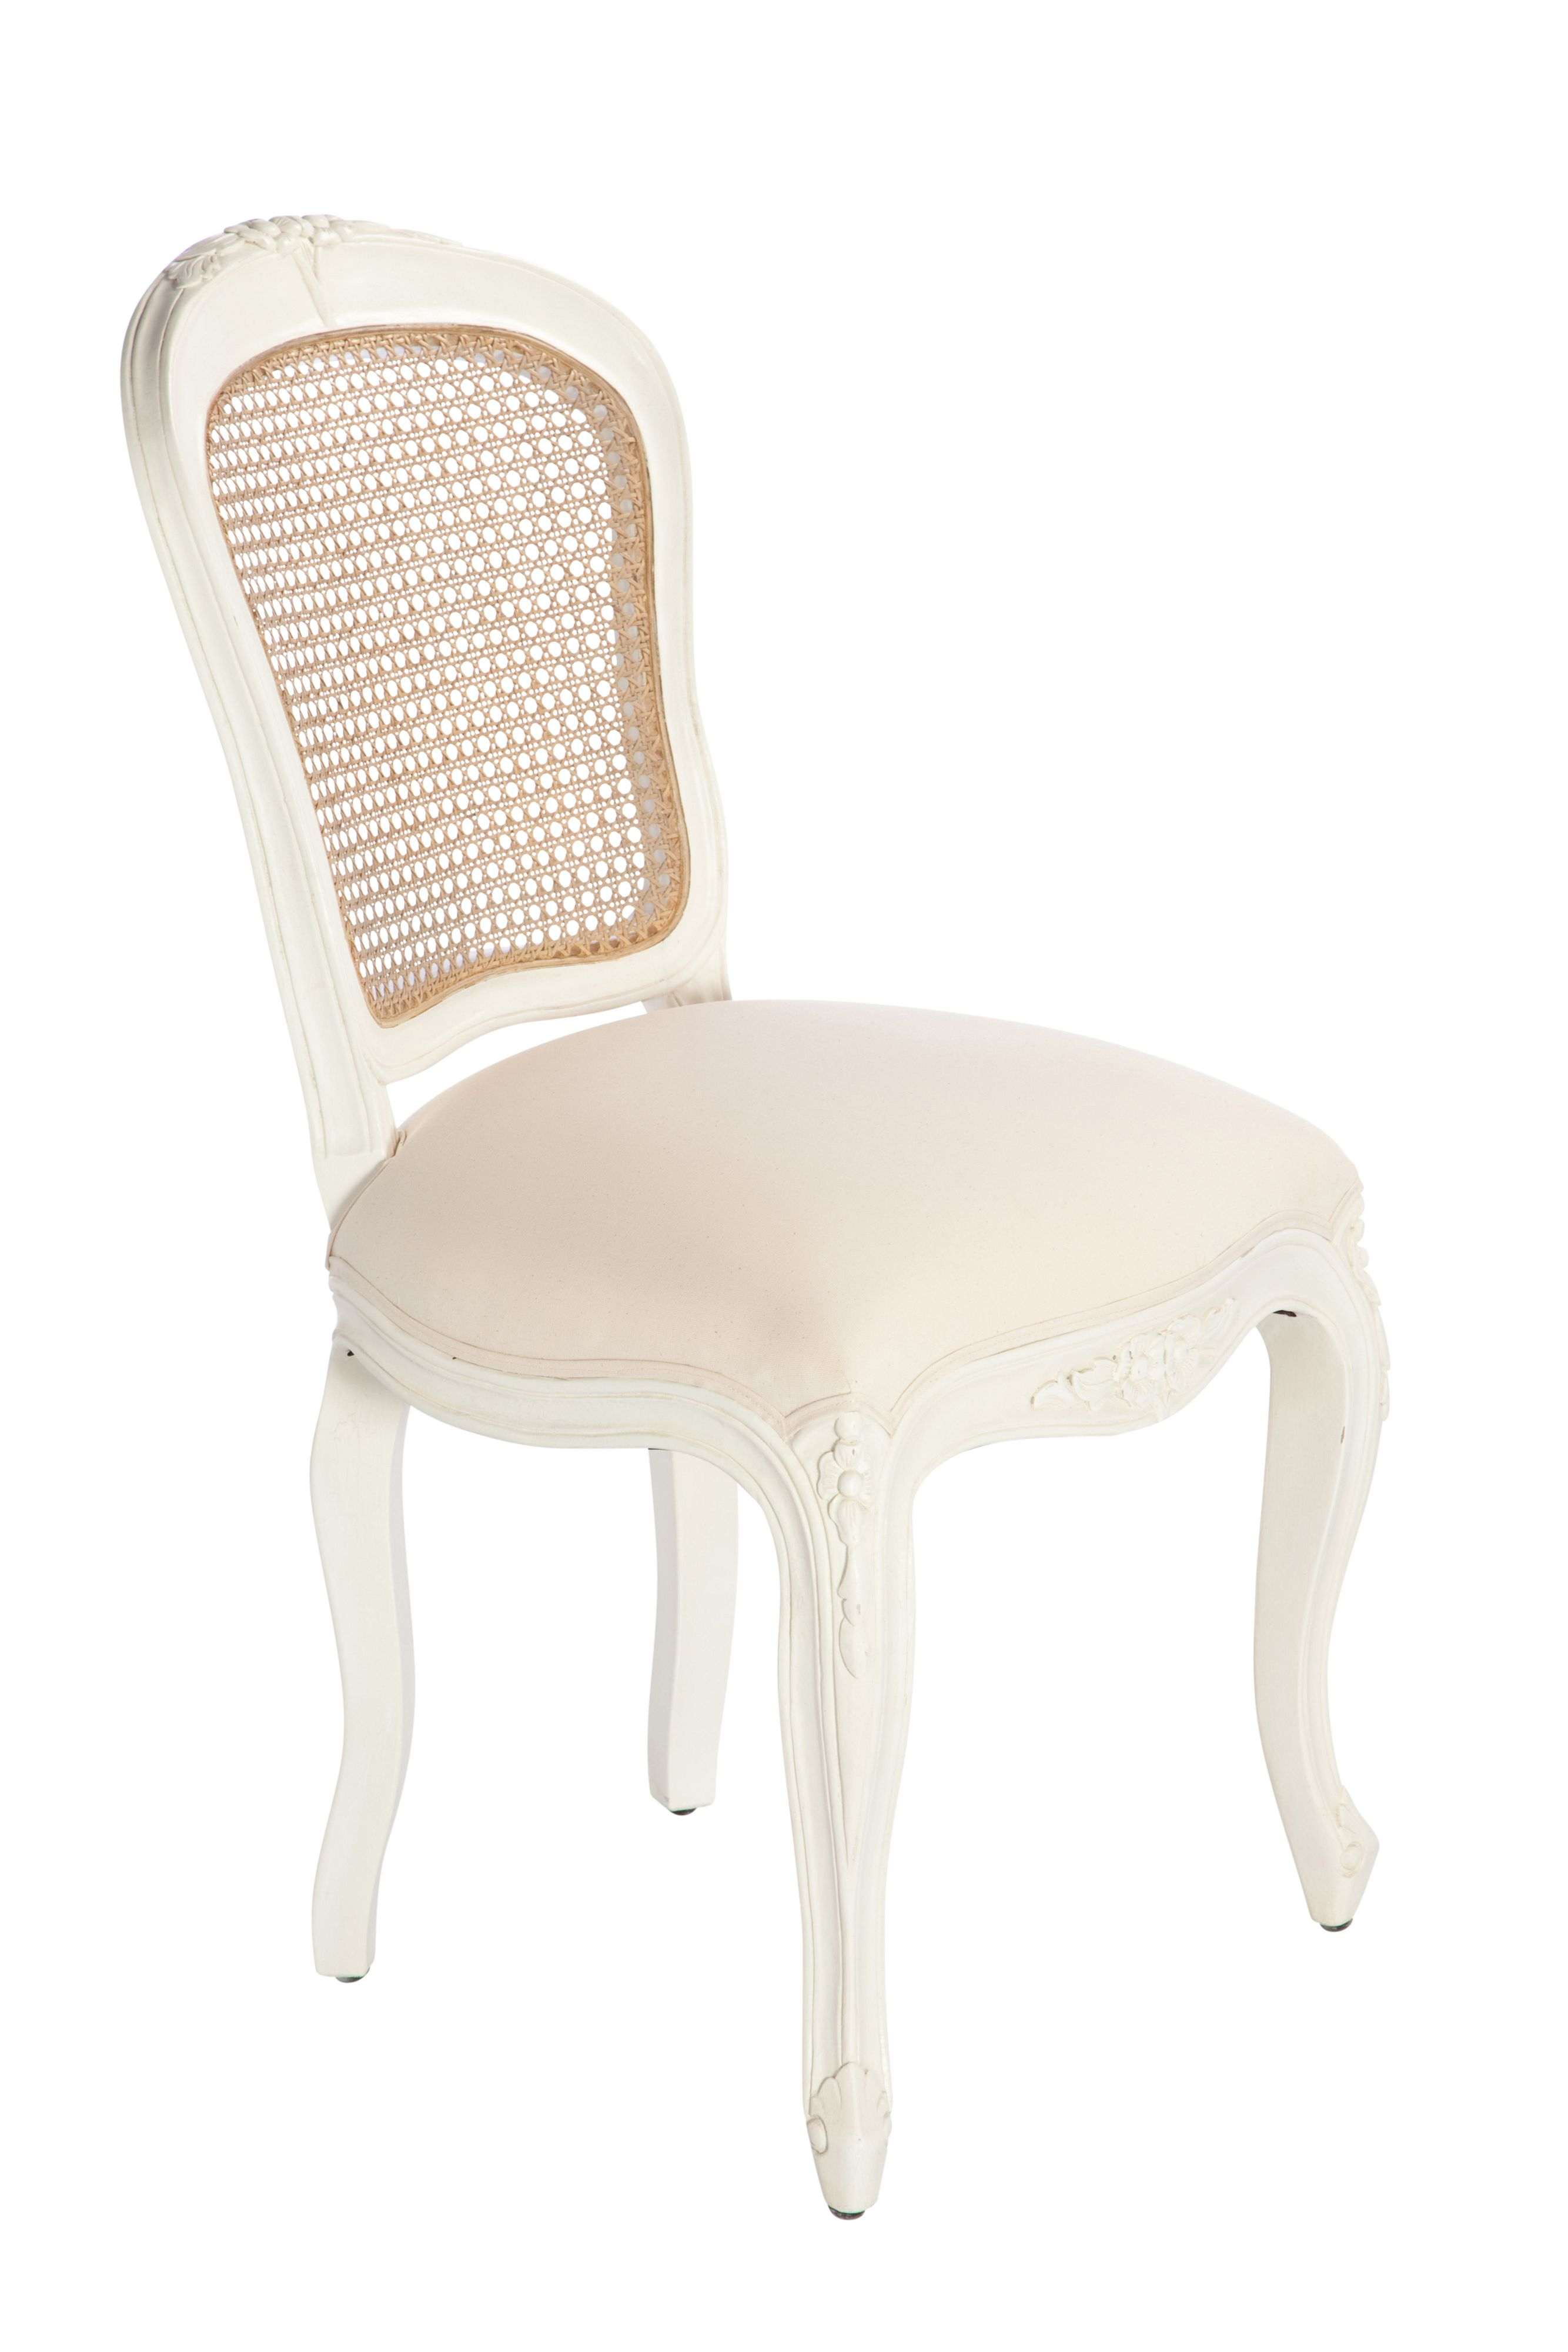 Willow dining chair pair